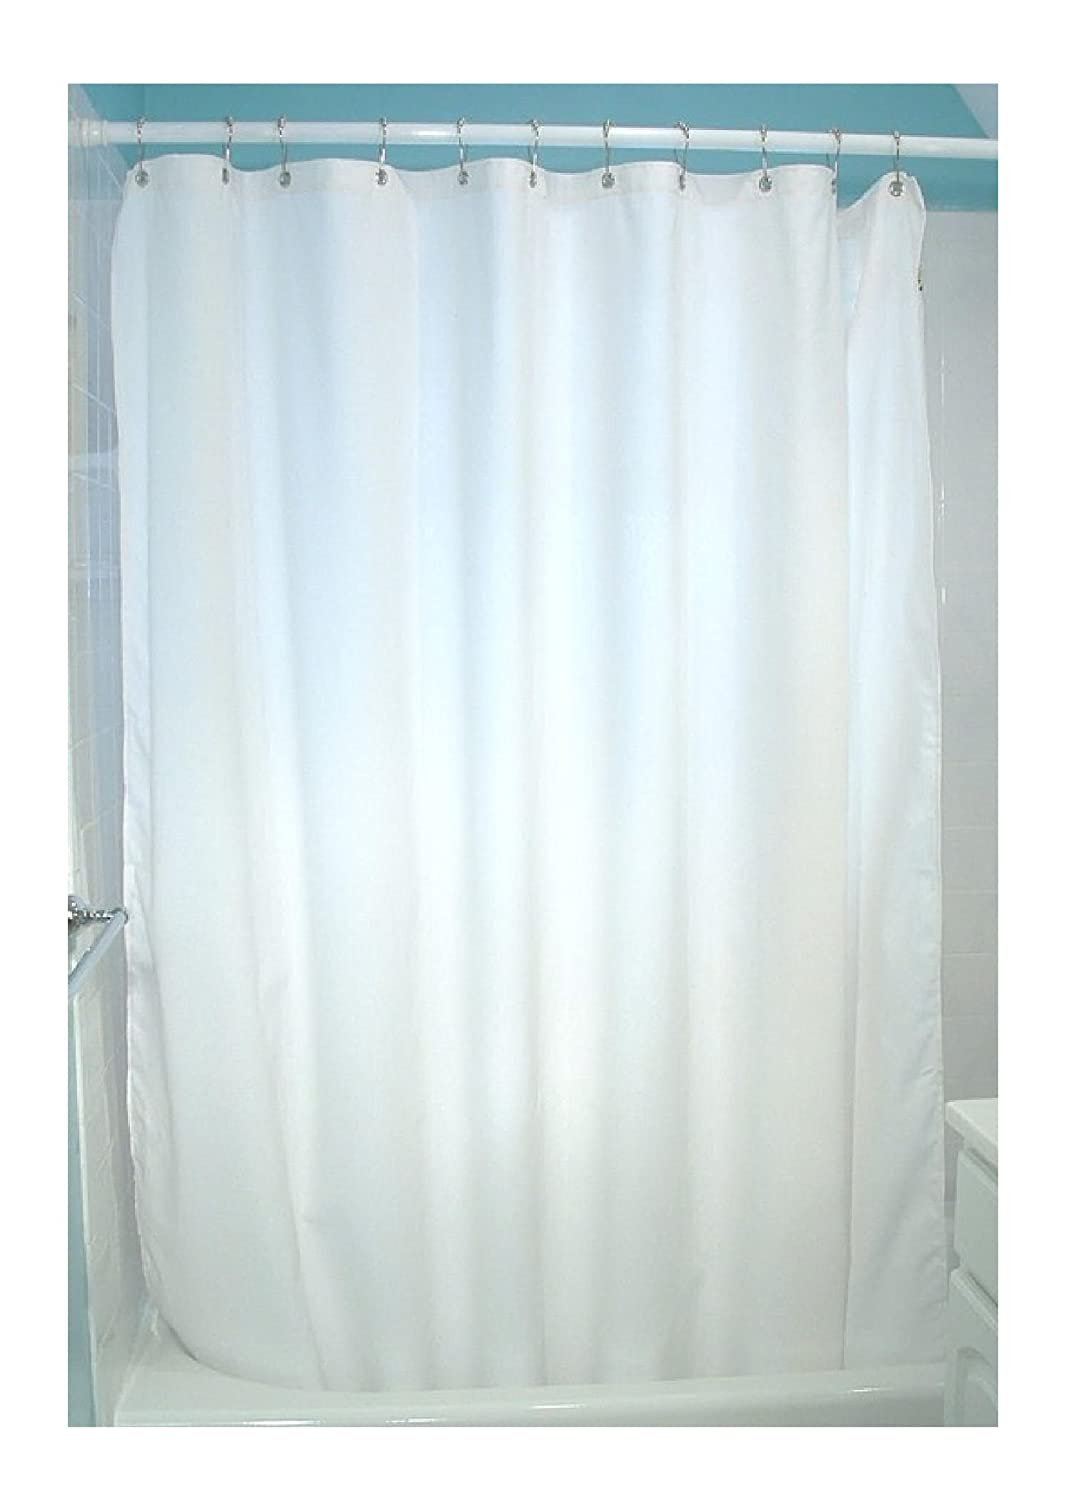 amazoncom cotton shower curtain  white  oz duck fabric made in usa bybean products home  kitchen. amazoncom cotton shower curtain  white  oz duck fabric made